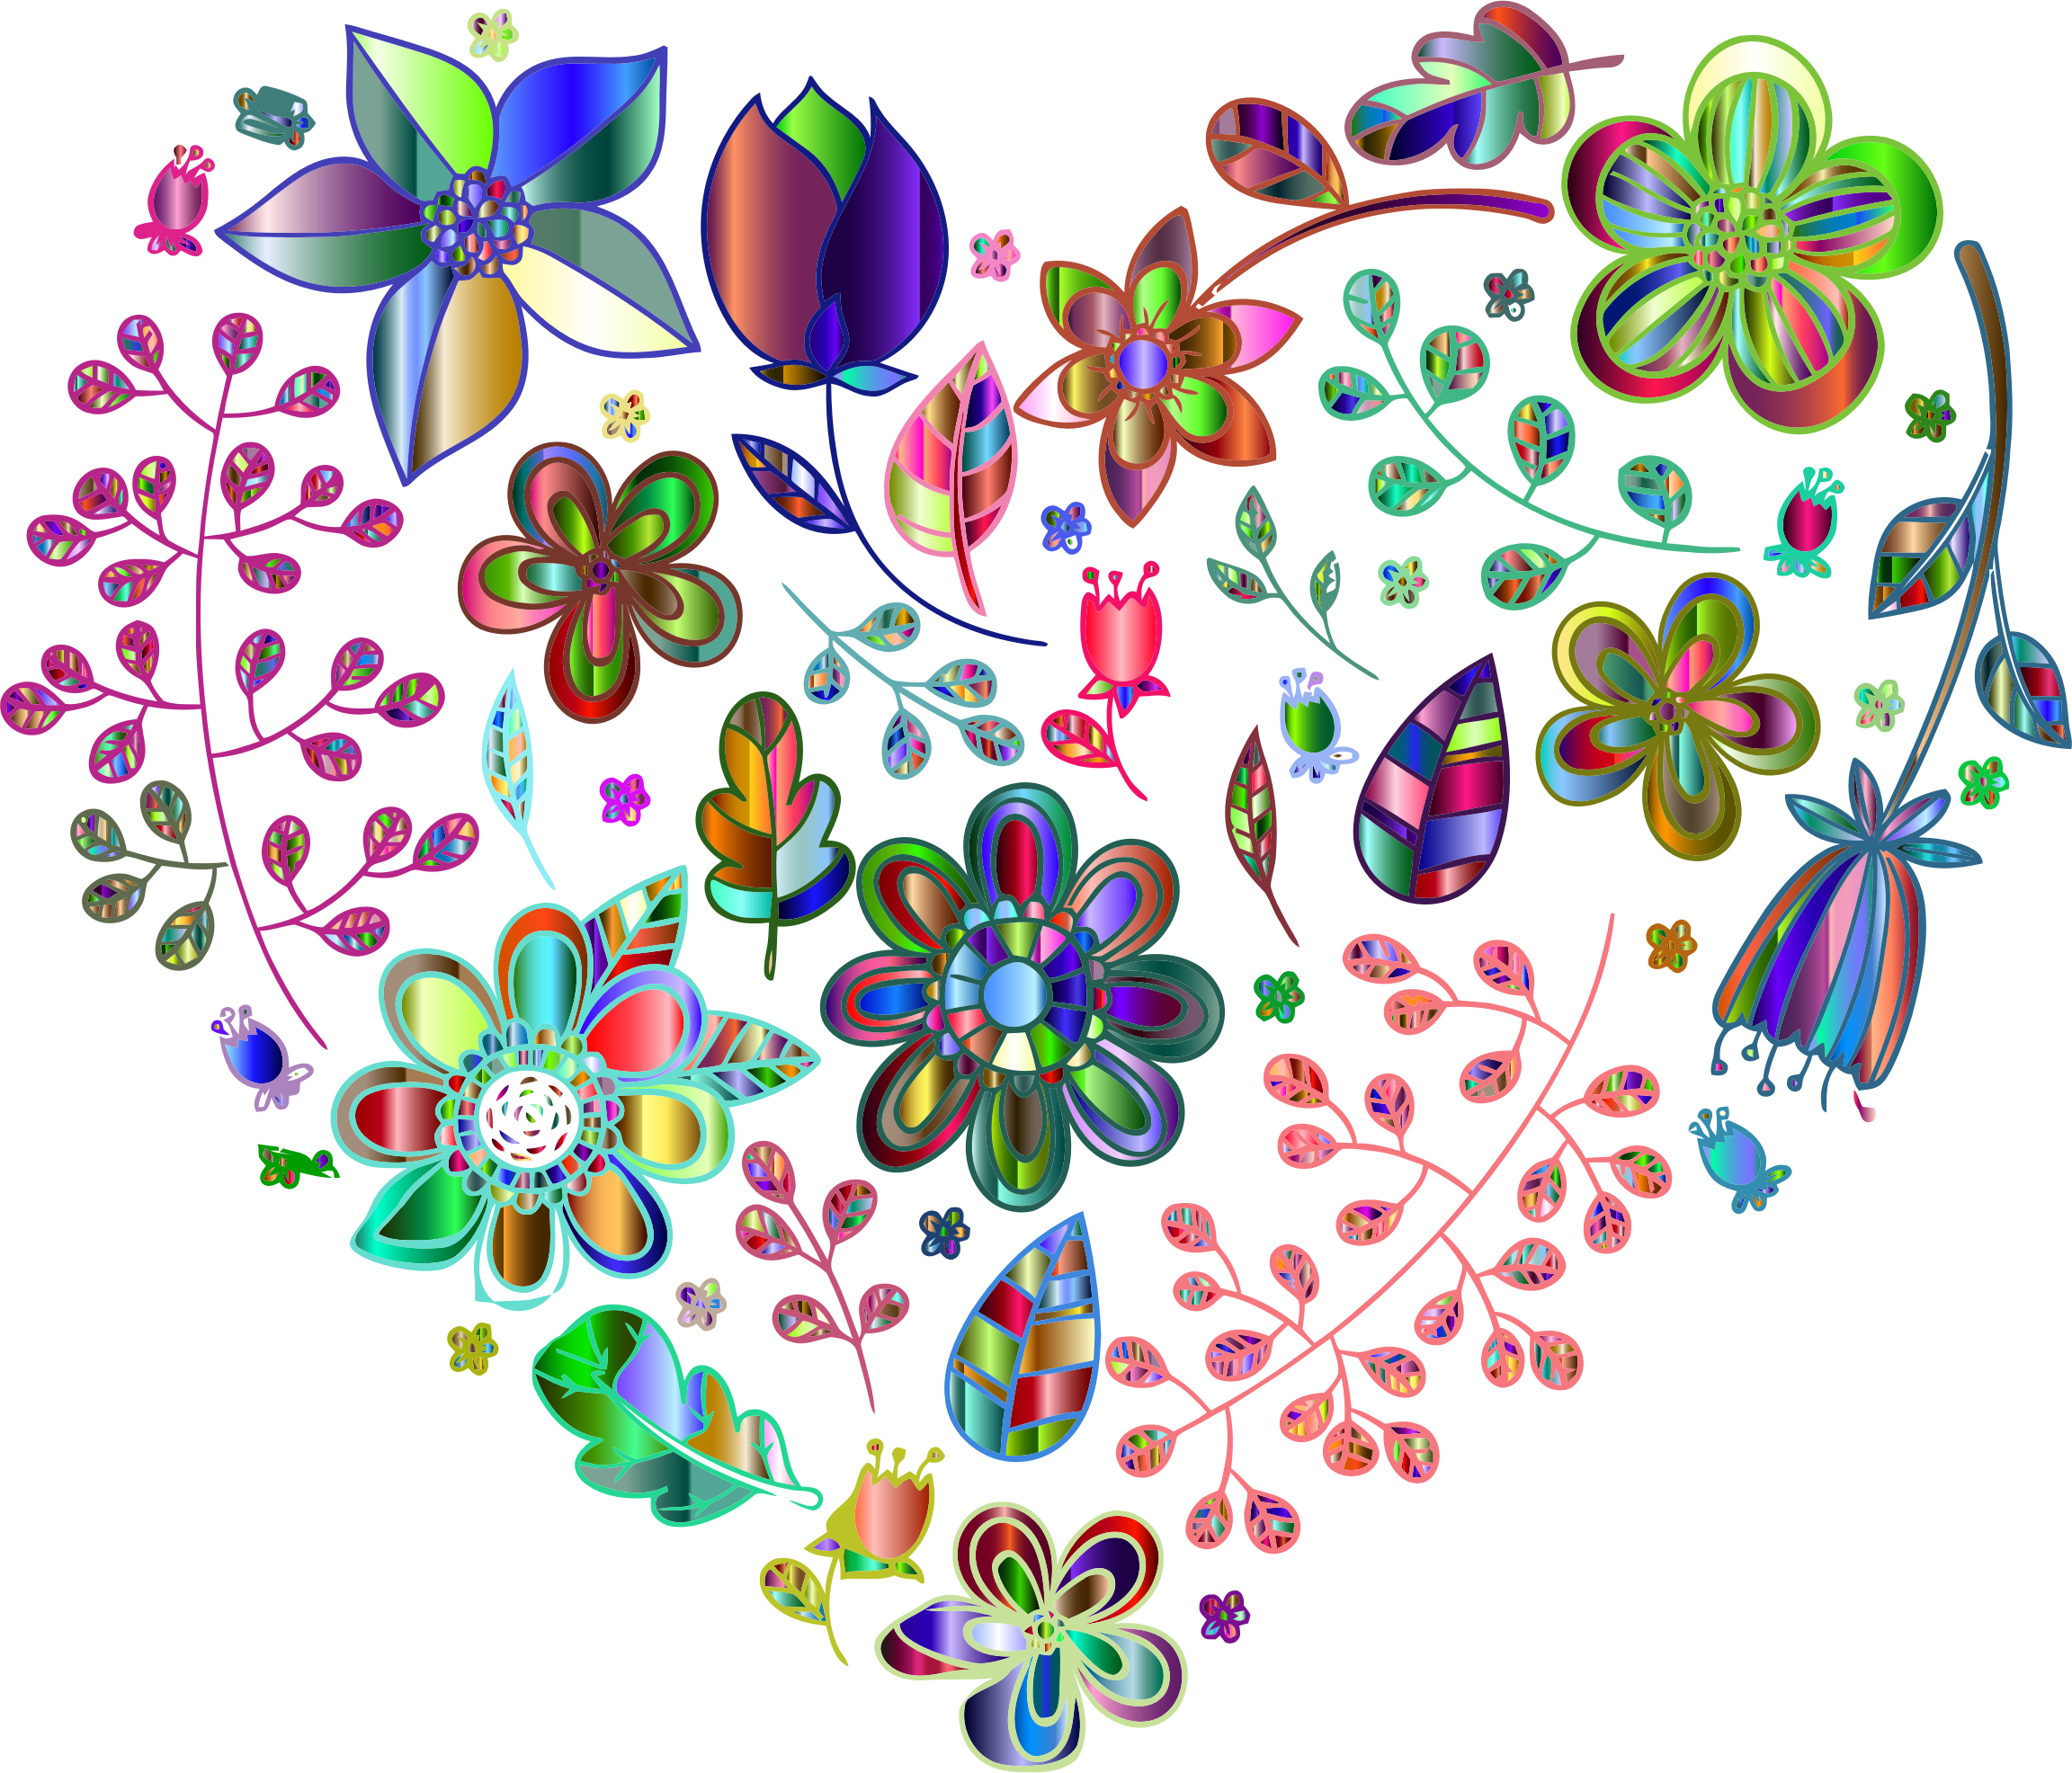 Prismatic Psychedelic Floral Heart 4 No Background by GDJ